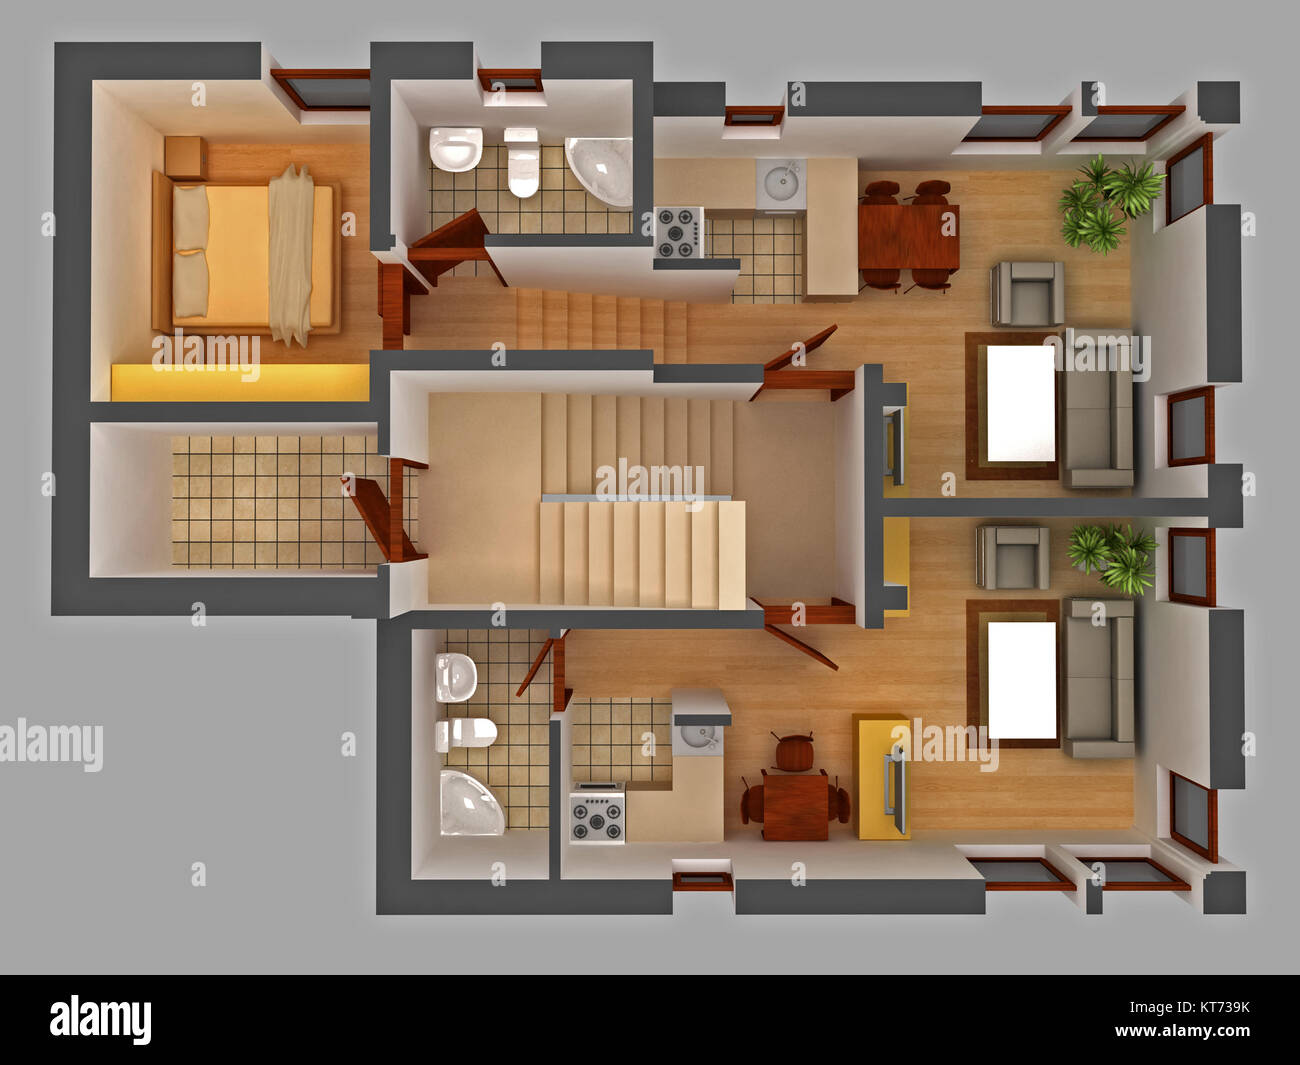 Technical drawing cad stock photos technical drawing cad for Apartment stock plans